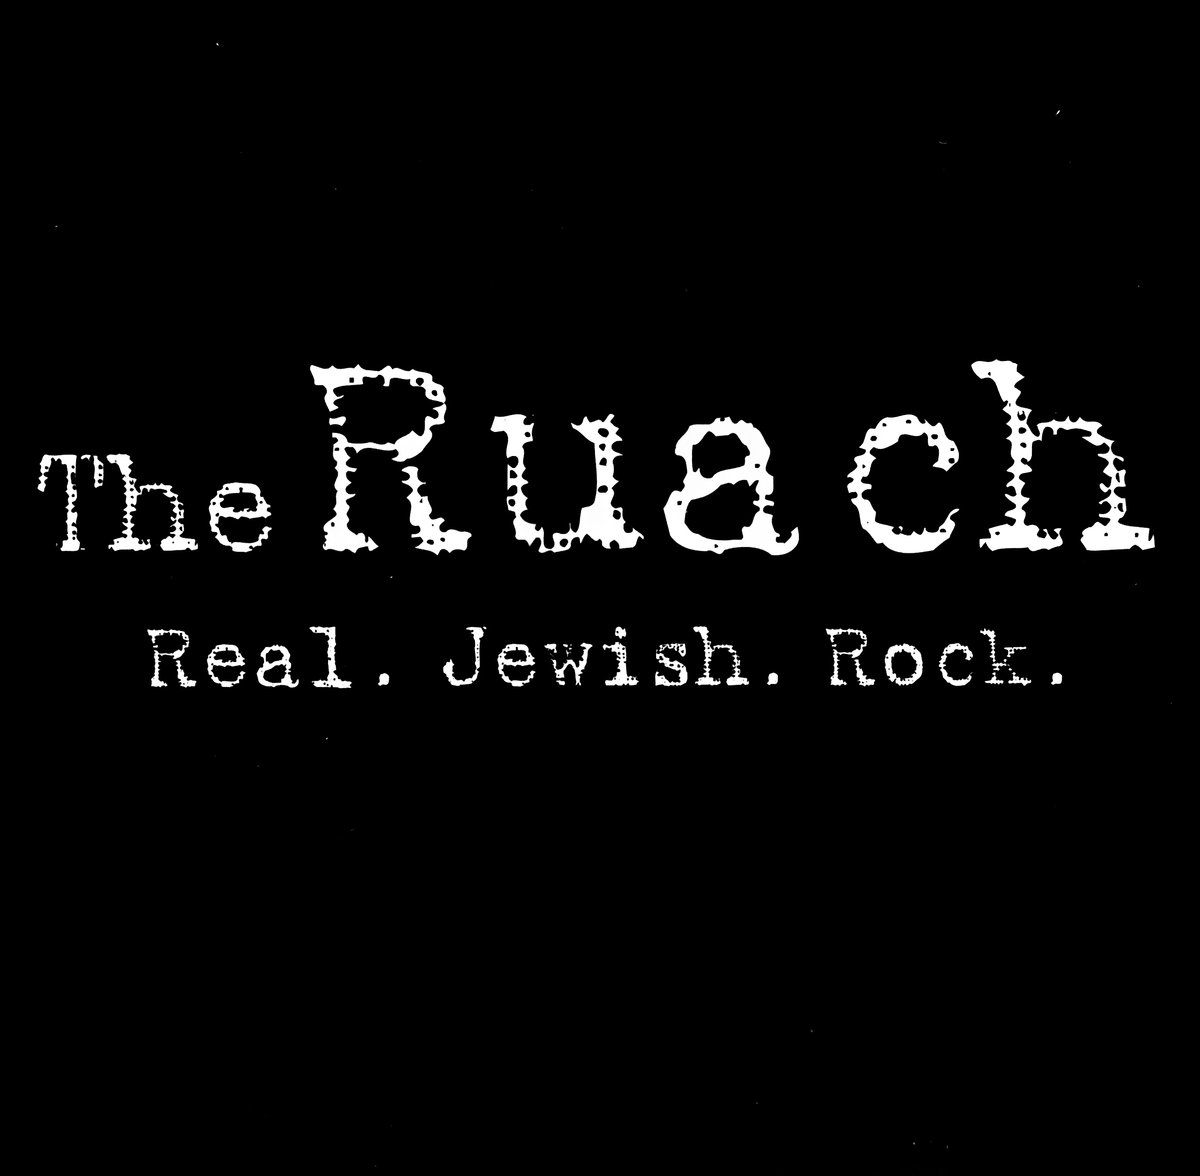 - The mission of The Ruach is to spread the joy of Judaism through music and spiritual experiences that engage people to embrace the religion and its culture.https://theruach.bandcamp.com/